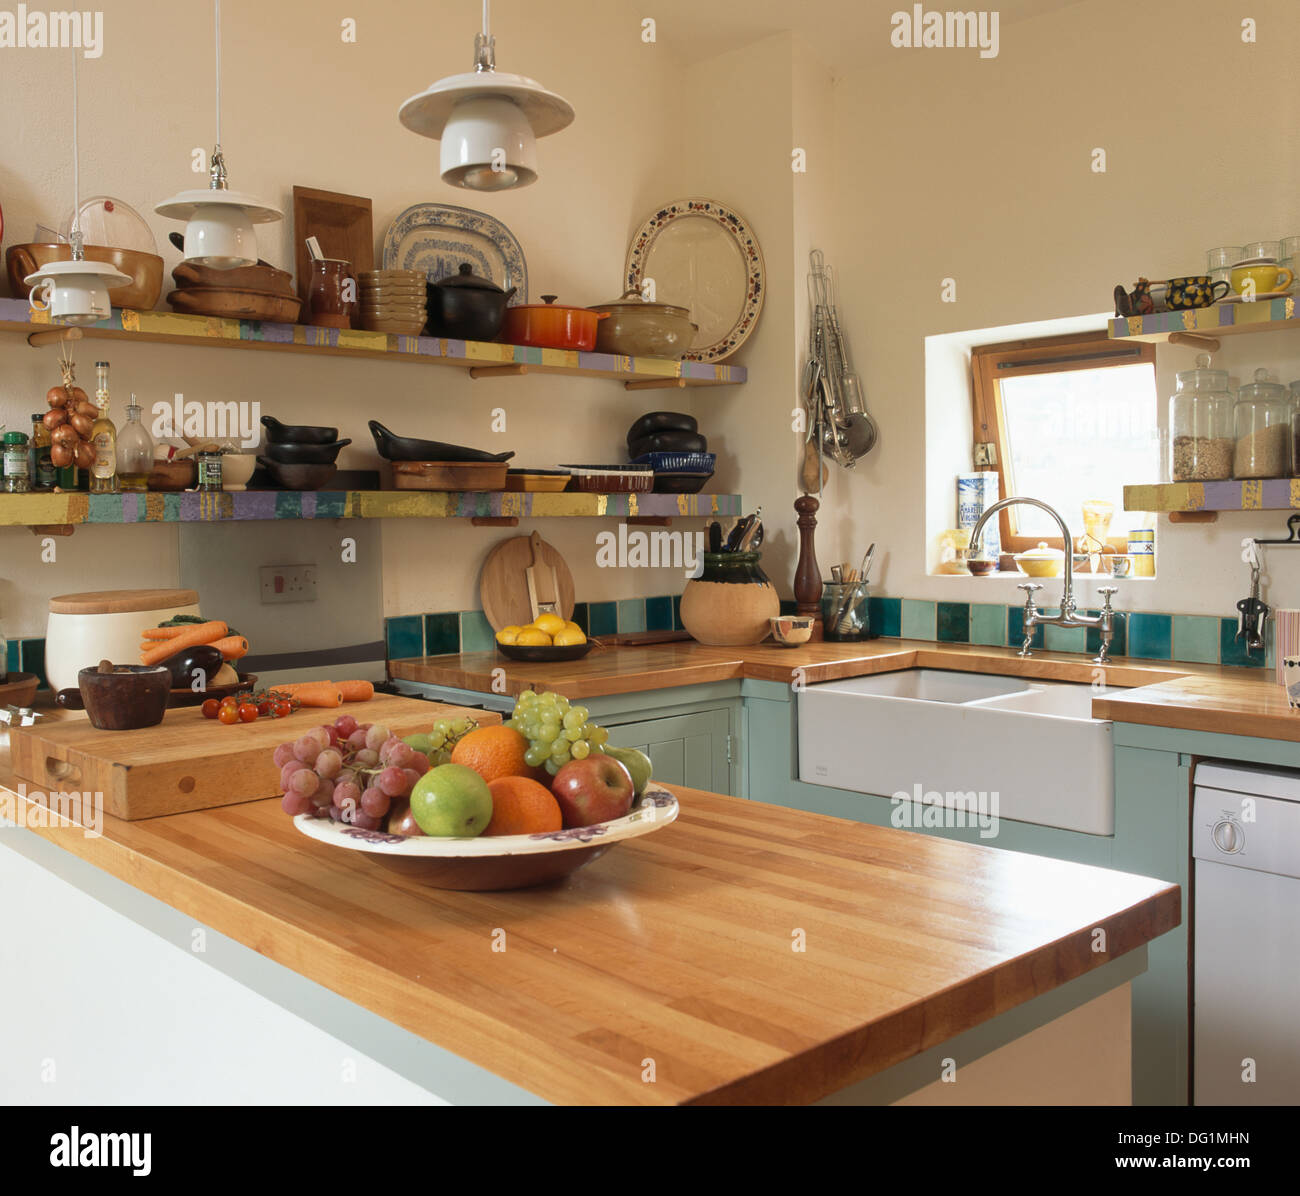 Cherry Wood Worktop In Small Country Kitchen With Belfast